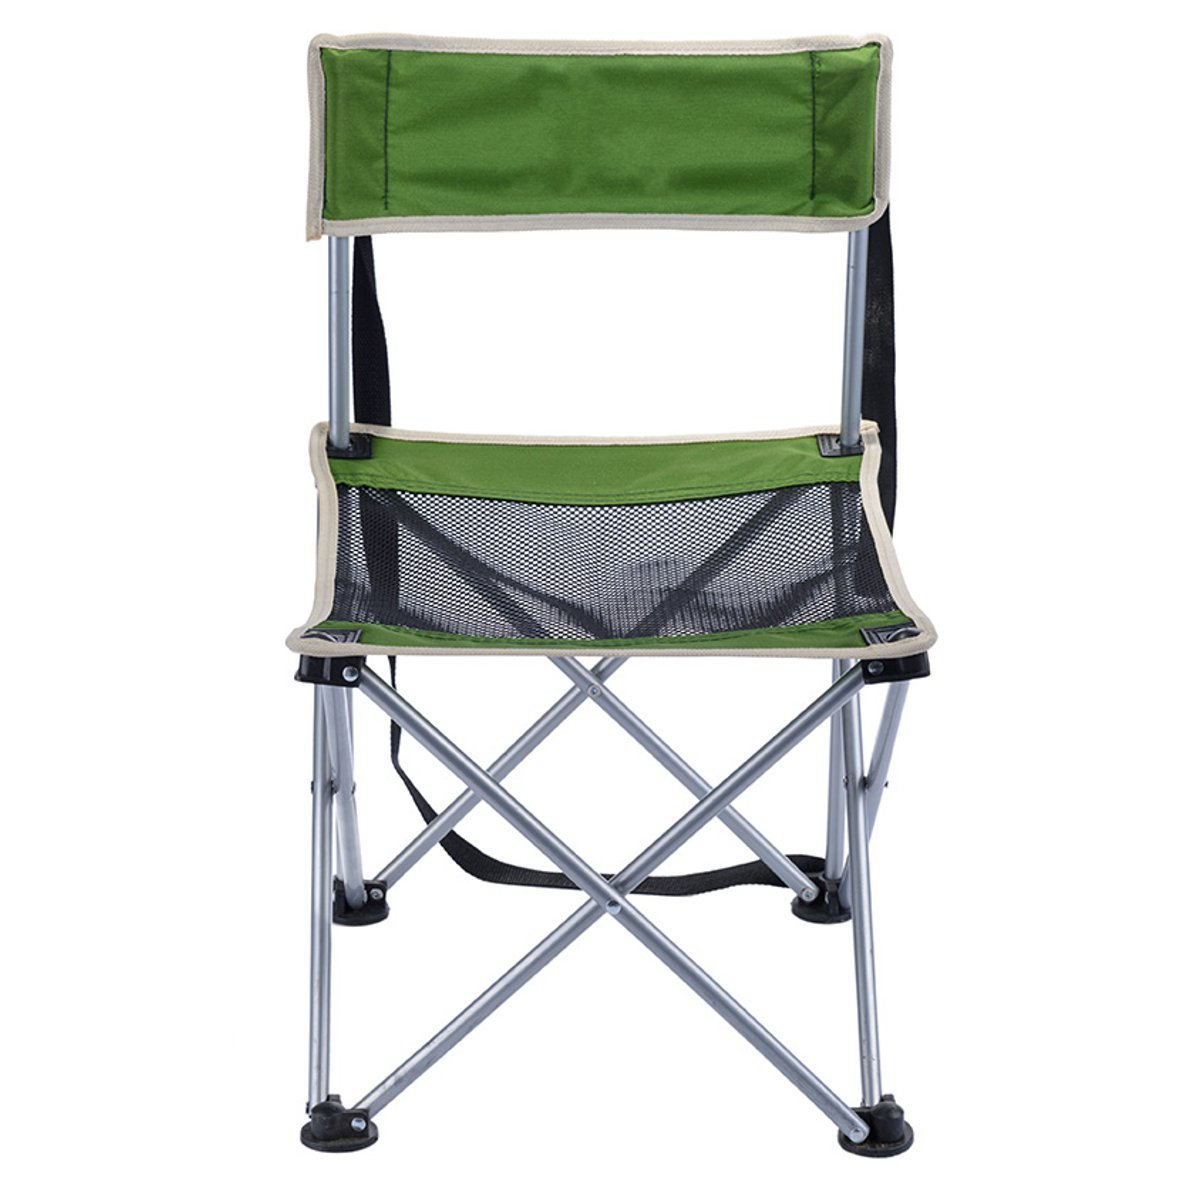 Camping Chairs Sale Outdooors Camping Portable Folding Chair Light Weight